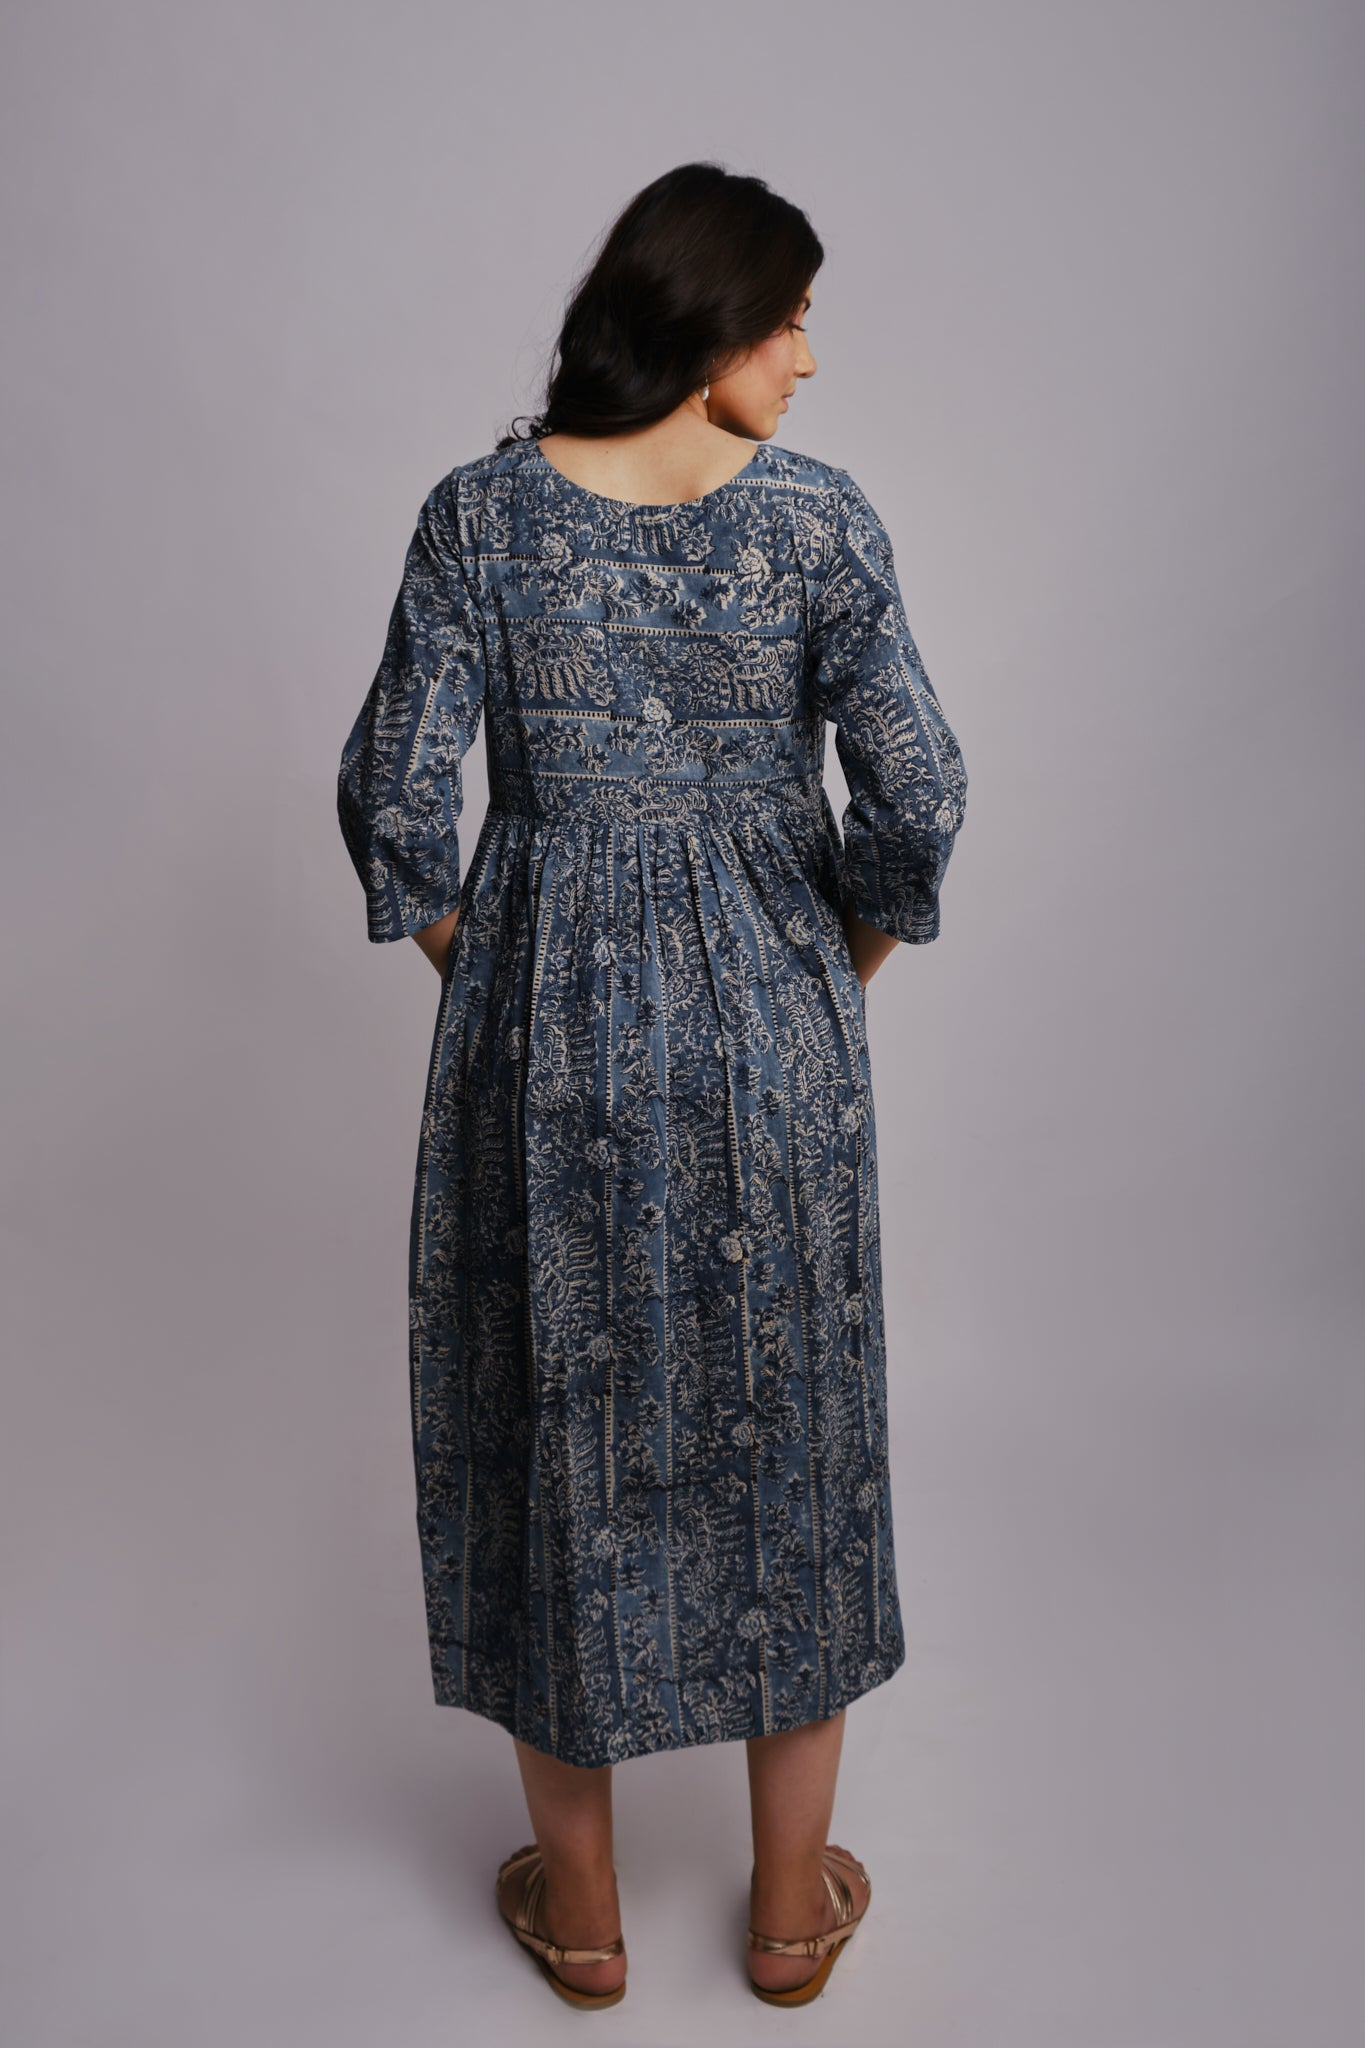 INDIGO TRELLIS DRESS